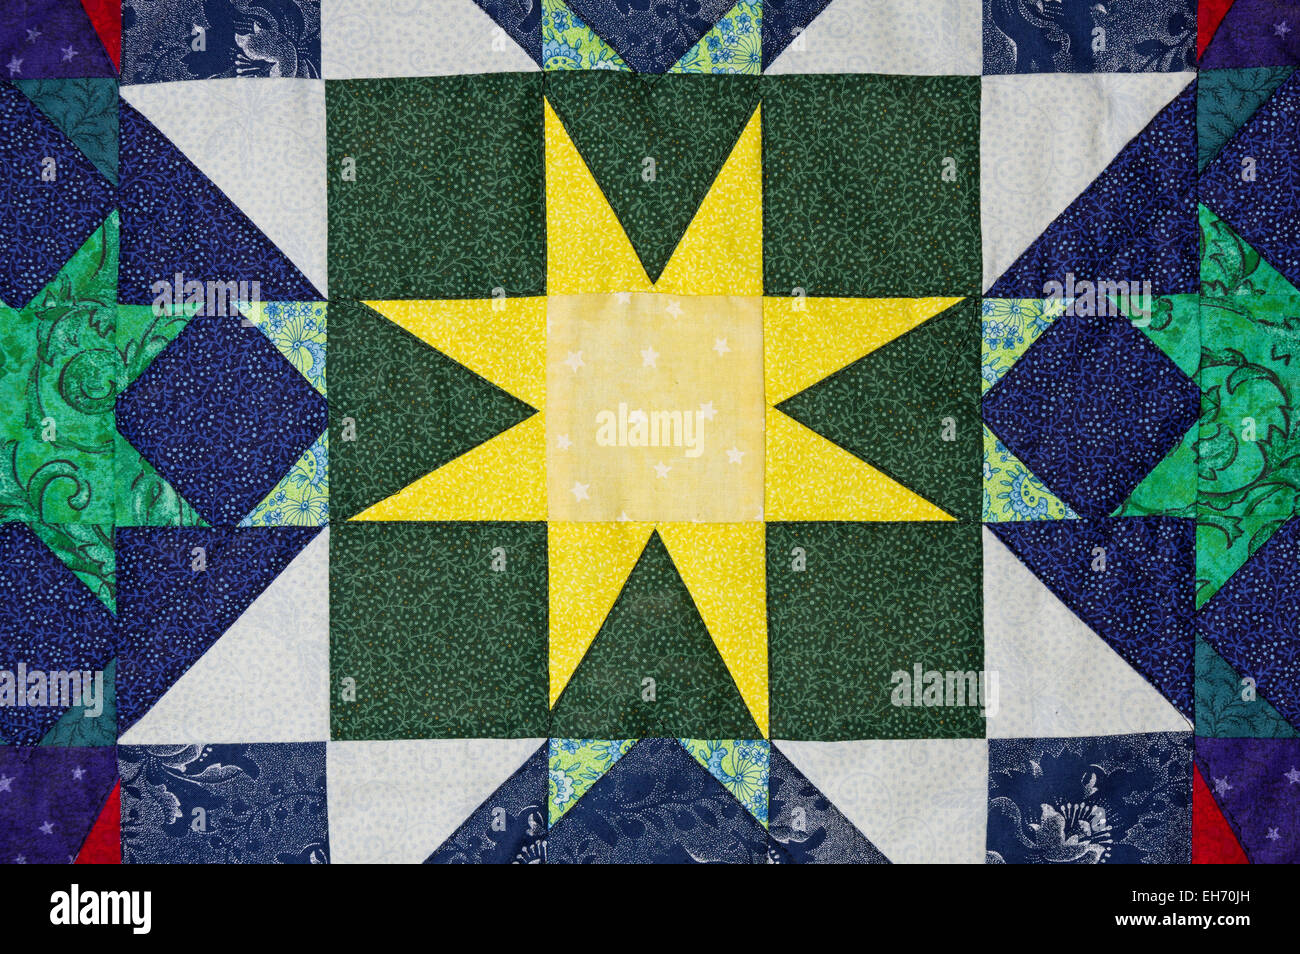 hand made quilt detail with colorful patterned cloth - Stock Image